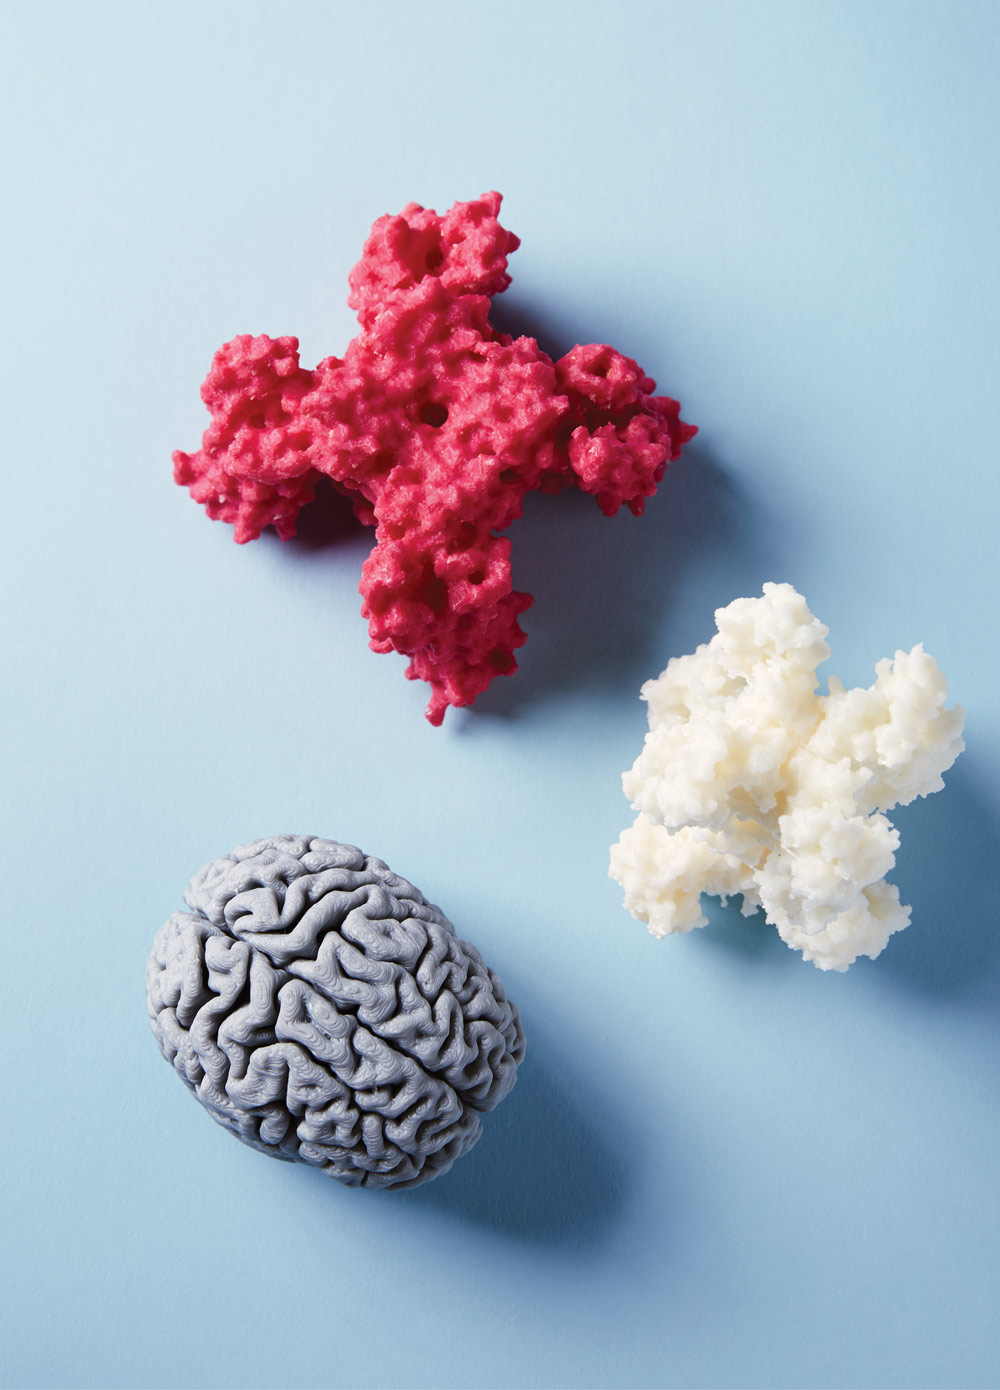 Goode has printed models of cell proteins and a model of a graduate studen'ts cerebral cortex, which he extracted from an MRI.